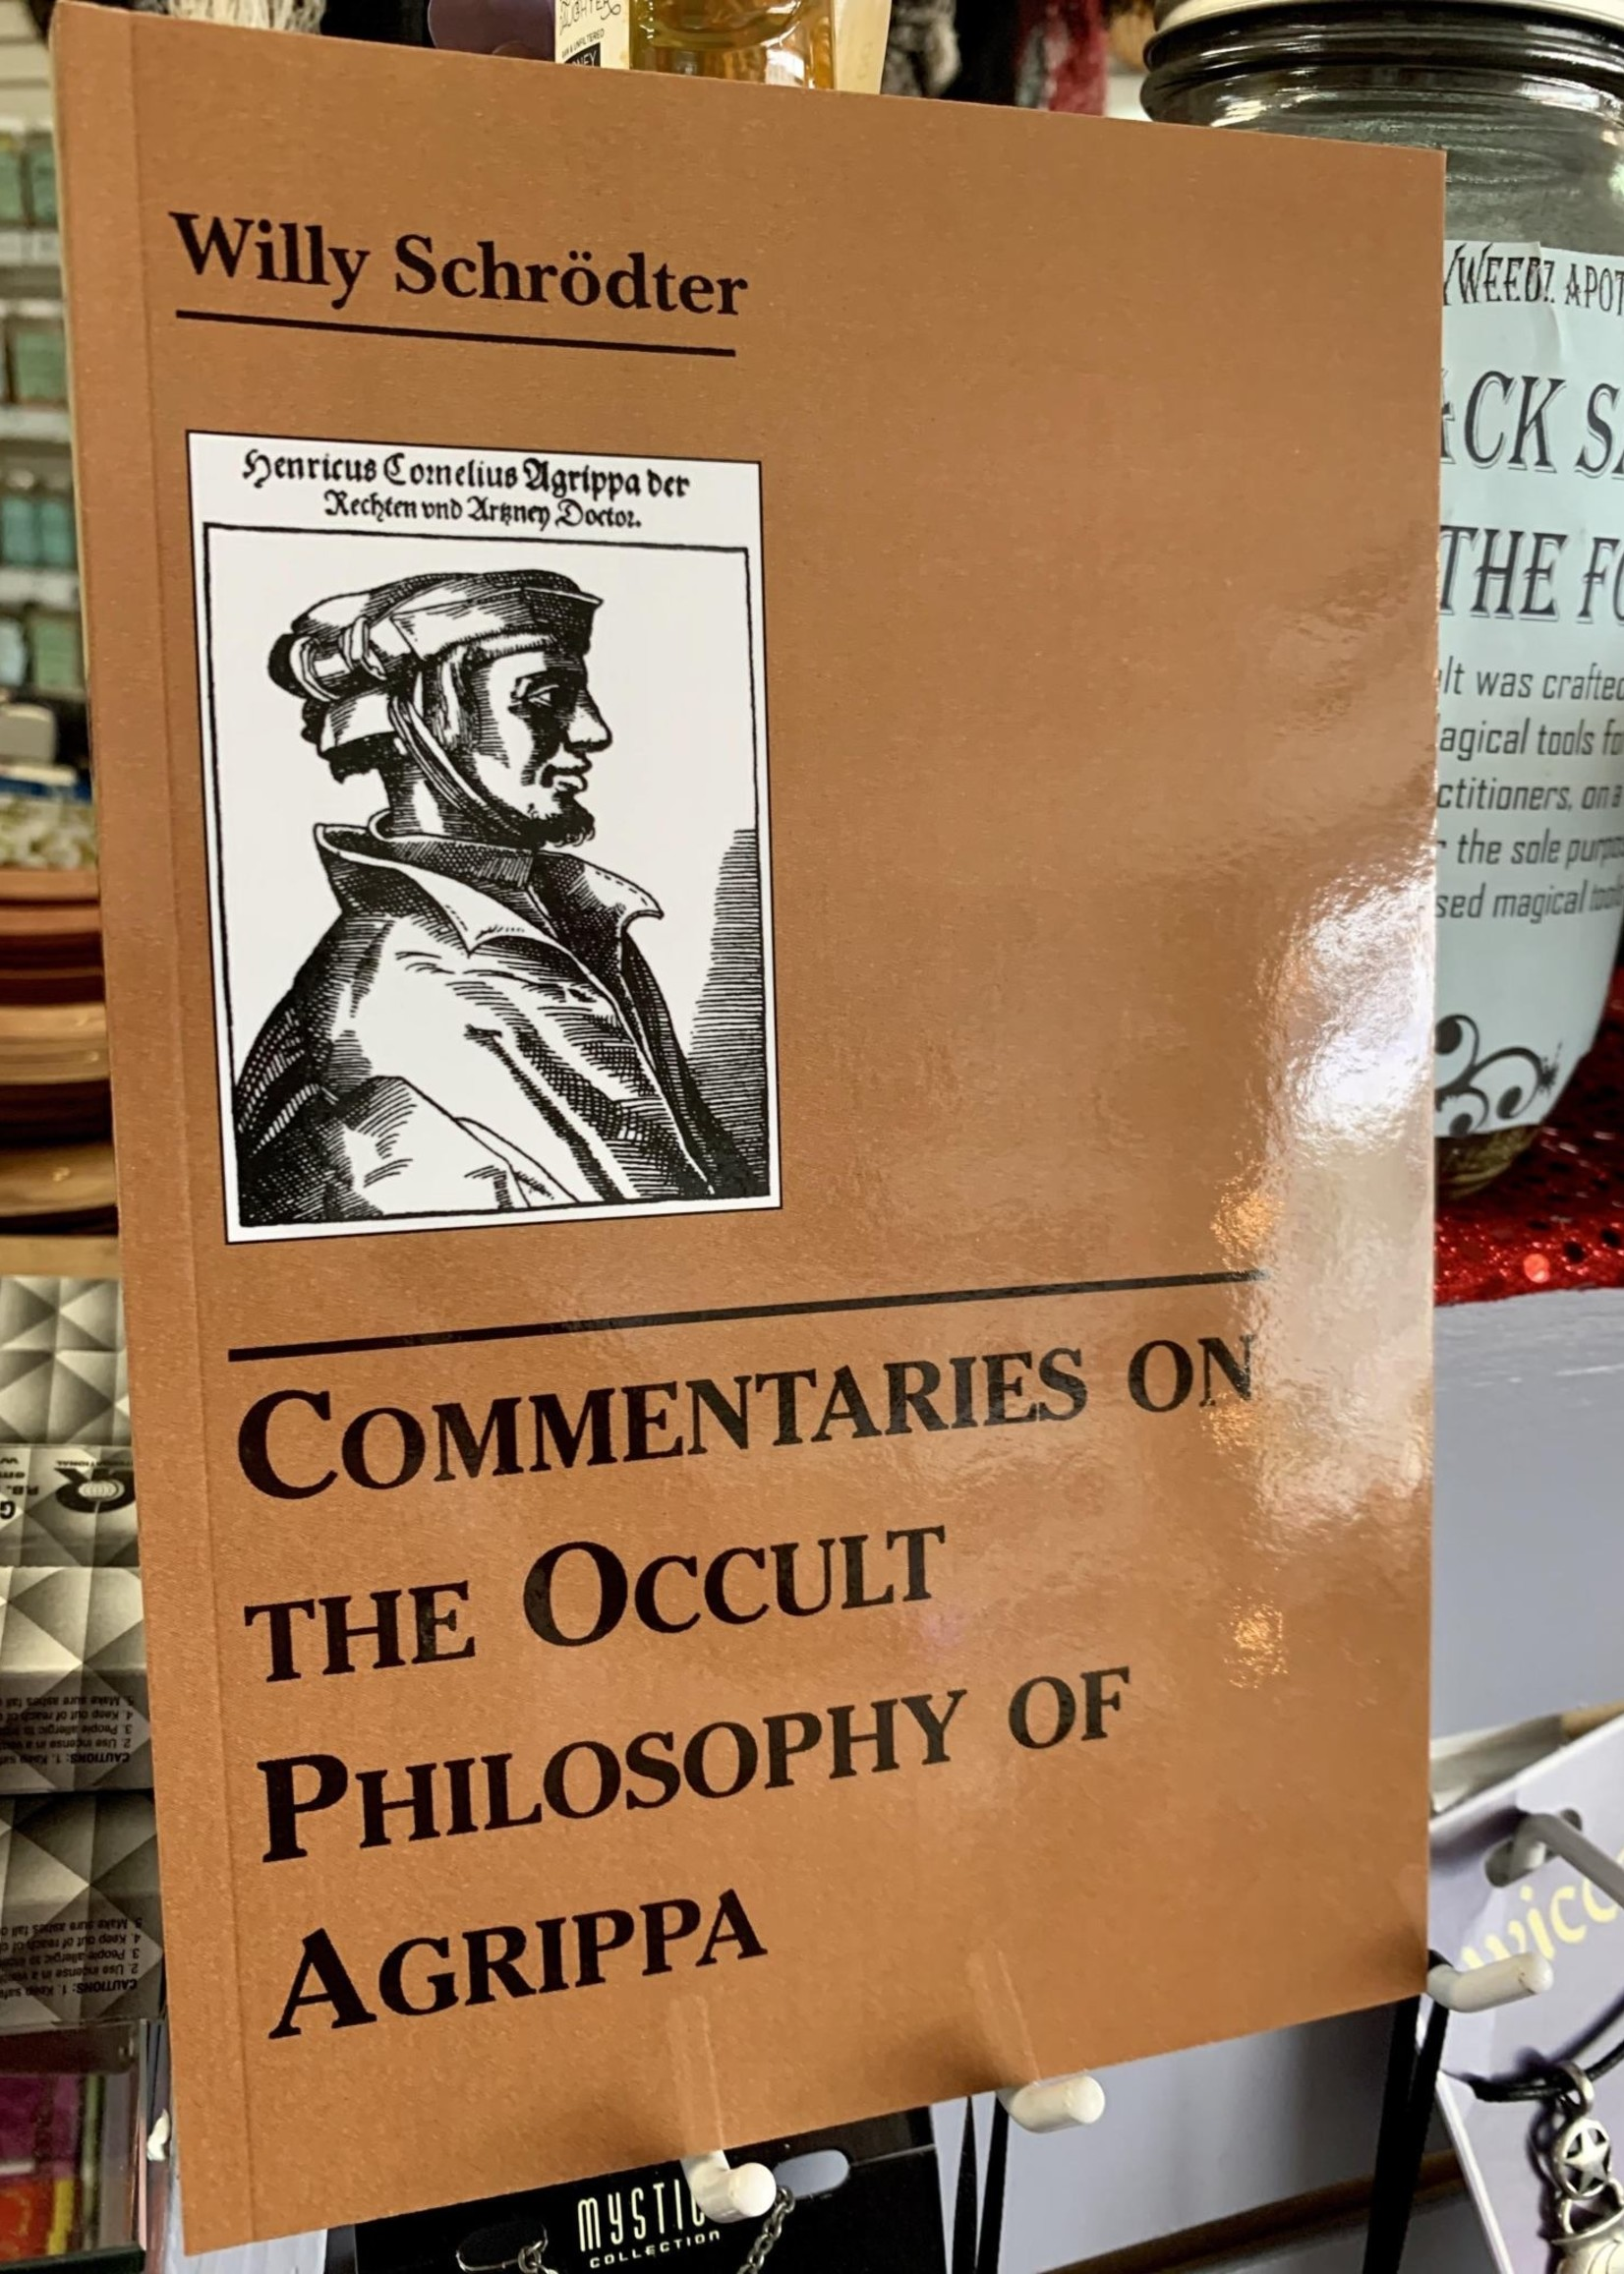 Commentaries on the Occult Philosophy of Agrippa - Willy Schroedter